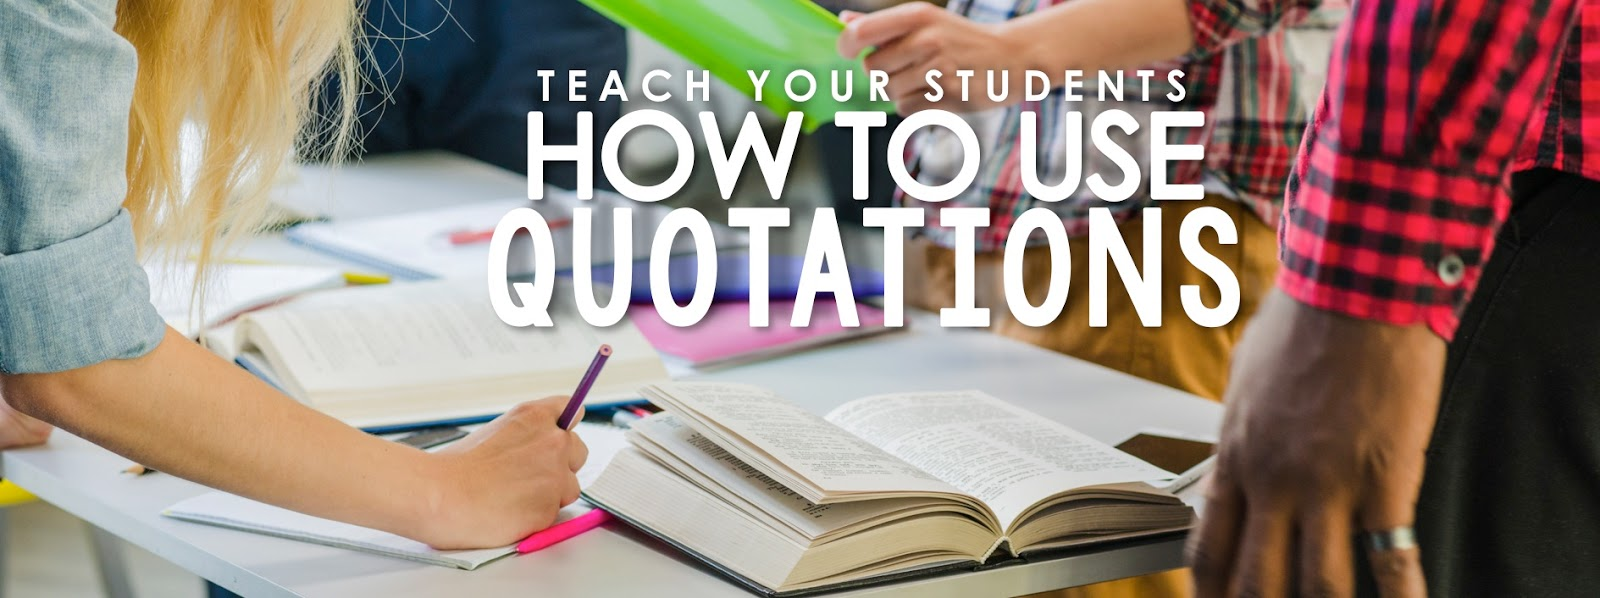 Teach Students How to Use Quotations - The Secondary English Coffee Shop [ 598 x 1600 Pixel ]